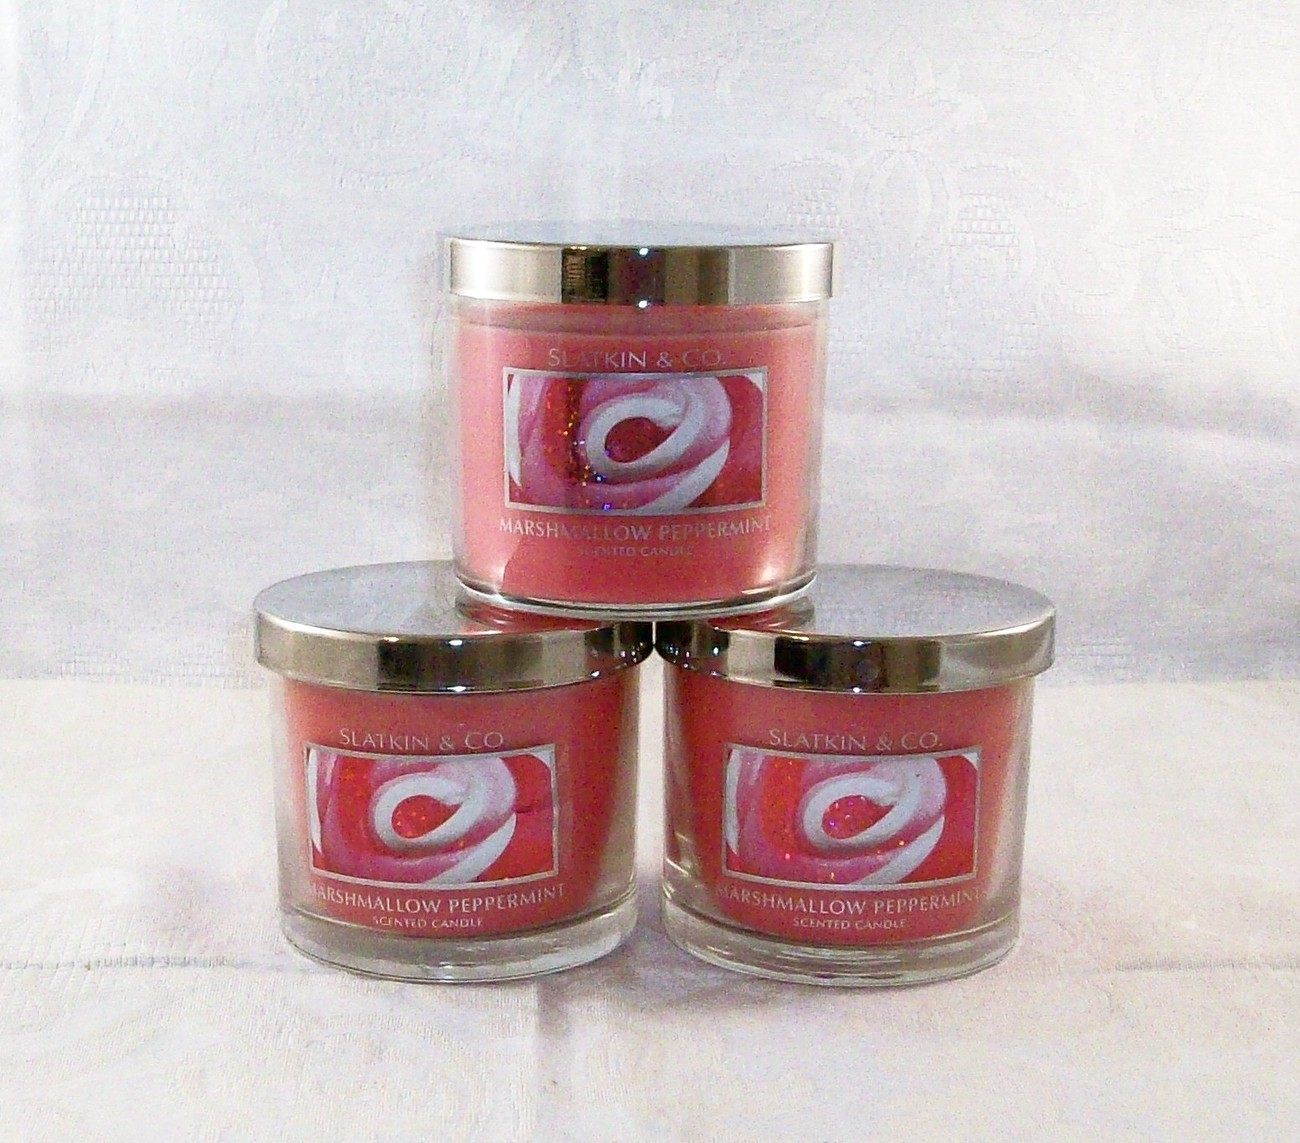 (3) Marshmallow Peppermint 4 oz Scented Candles Slatkin & Co